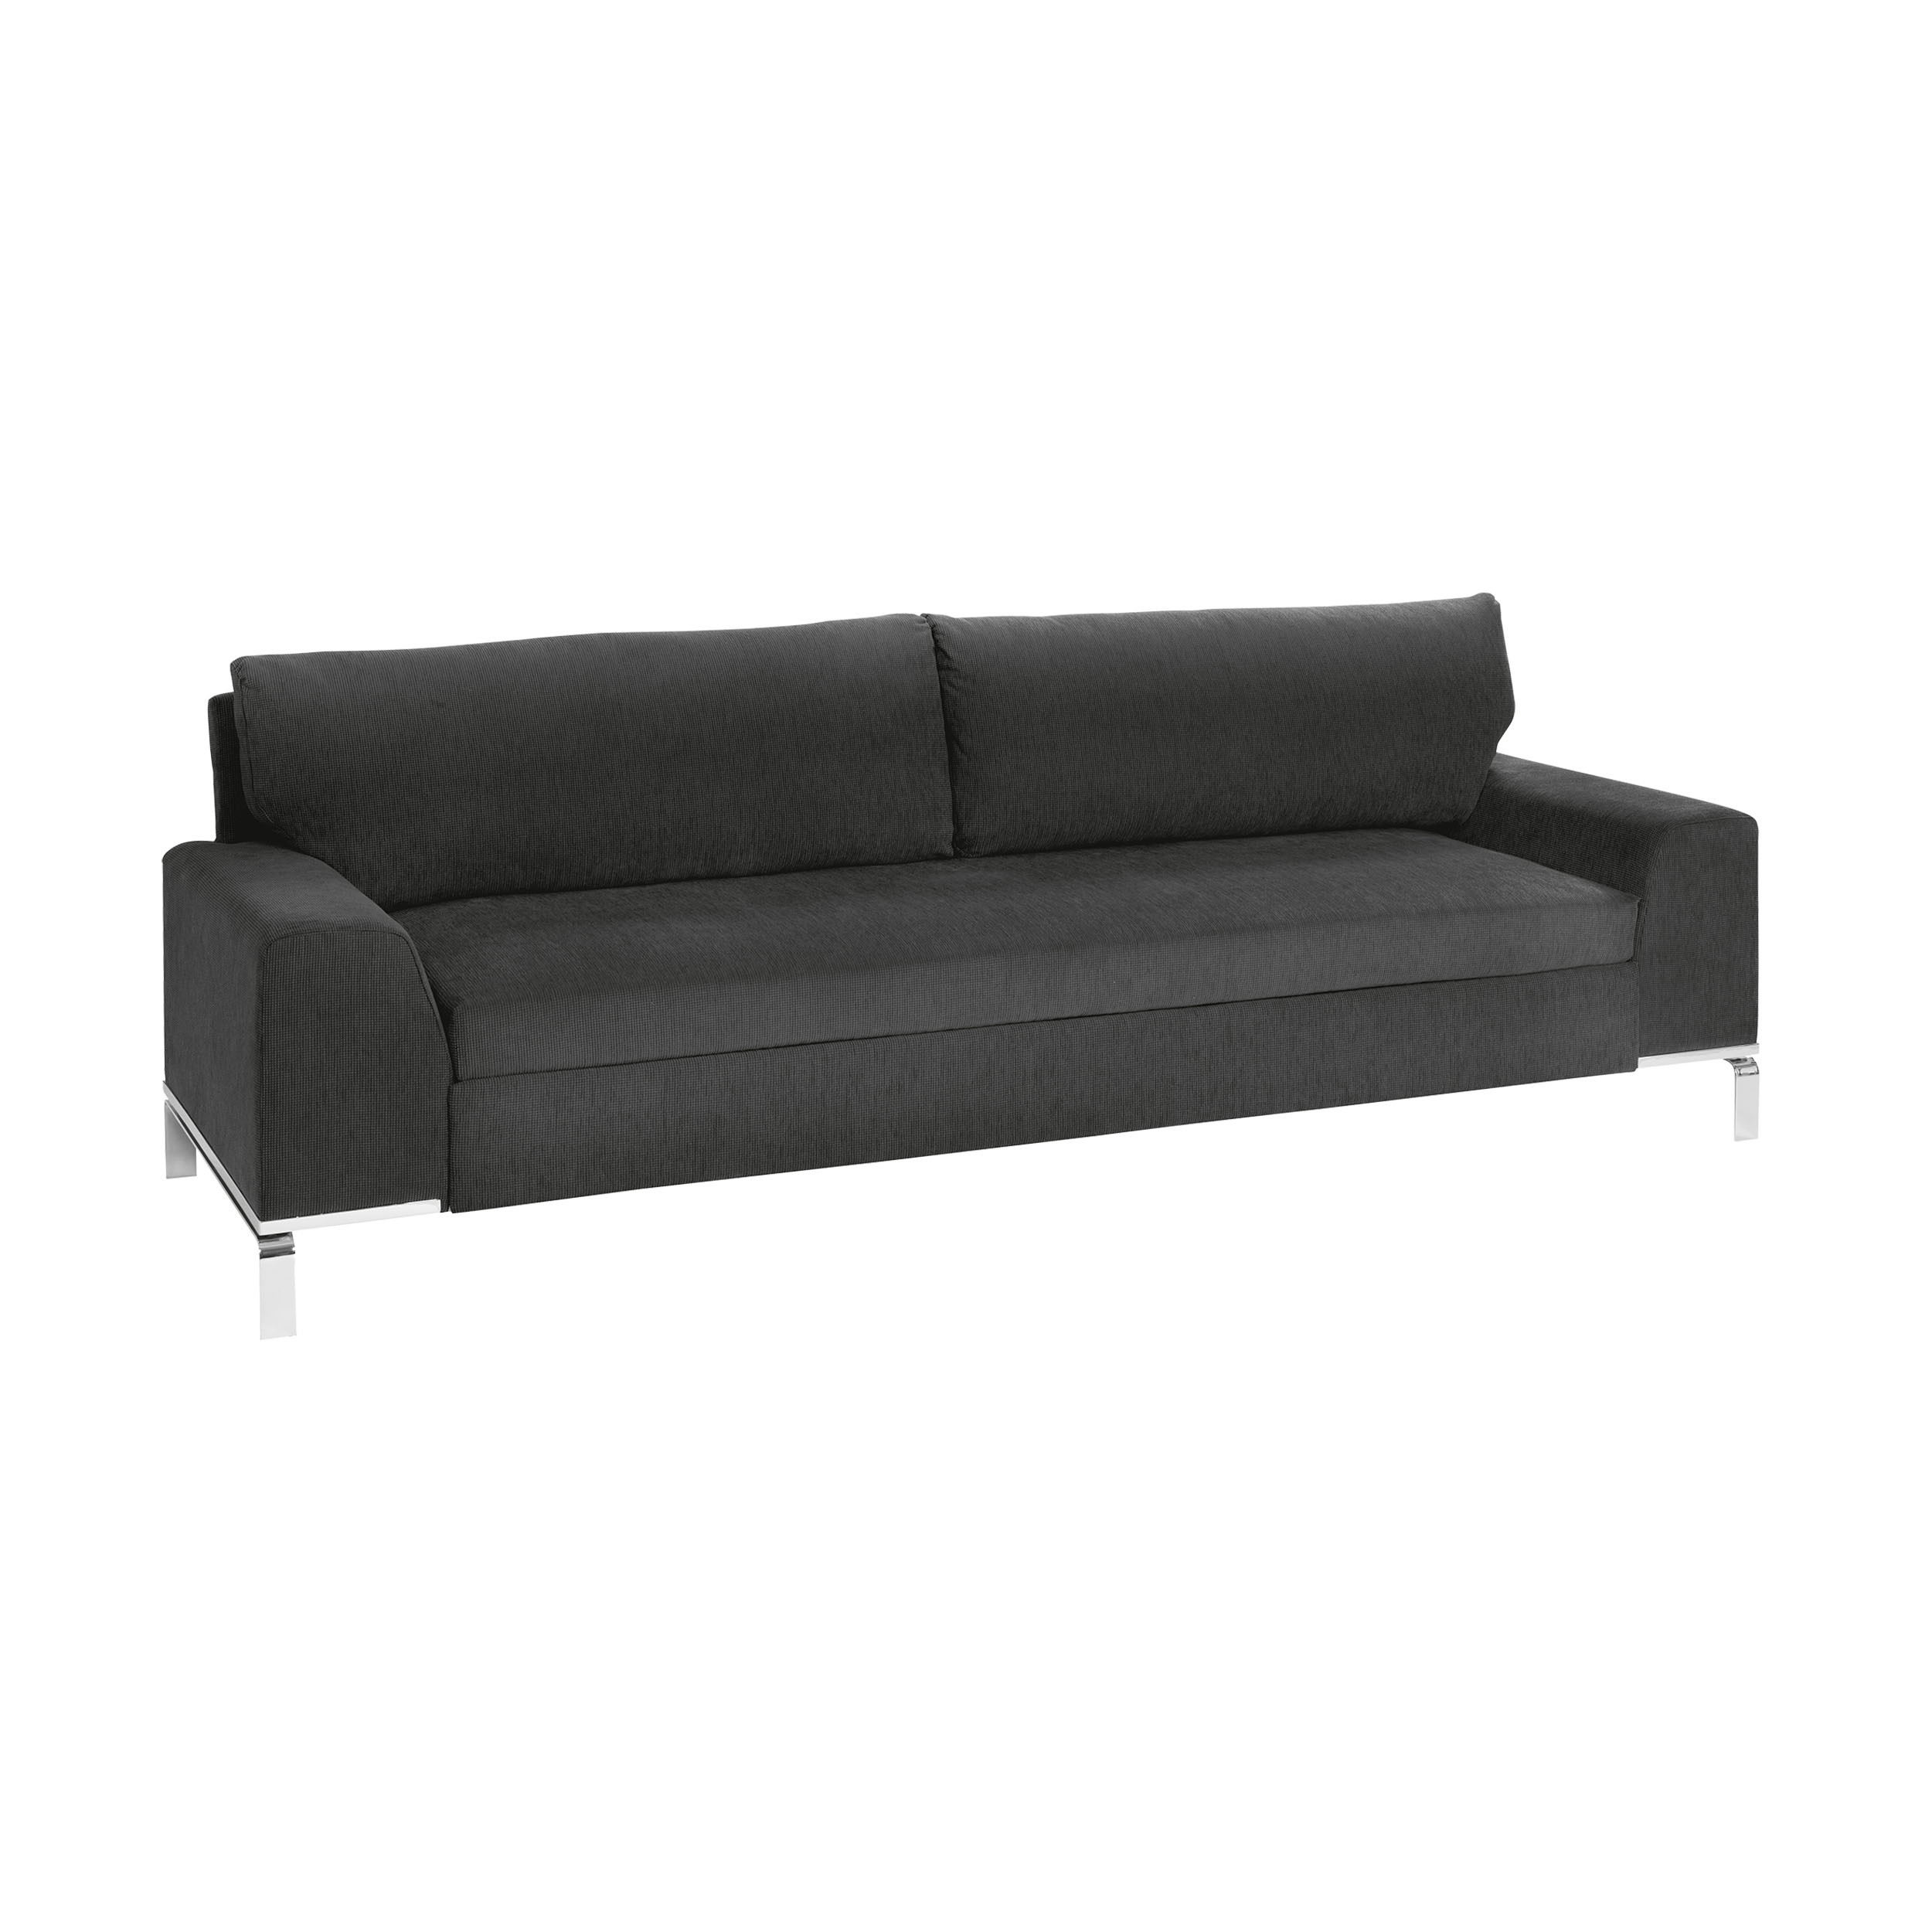 bed for living divan 3 sitzer schlafsofa anthrazit online kaufen bei woonio. Black Bedroom Furniture Sets. Home Design Ideas